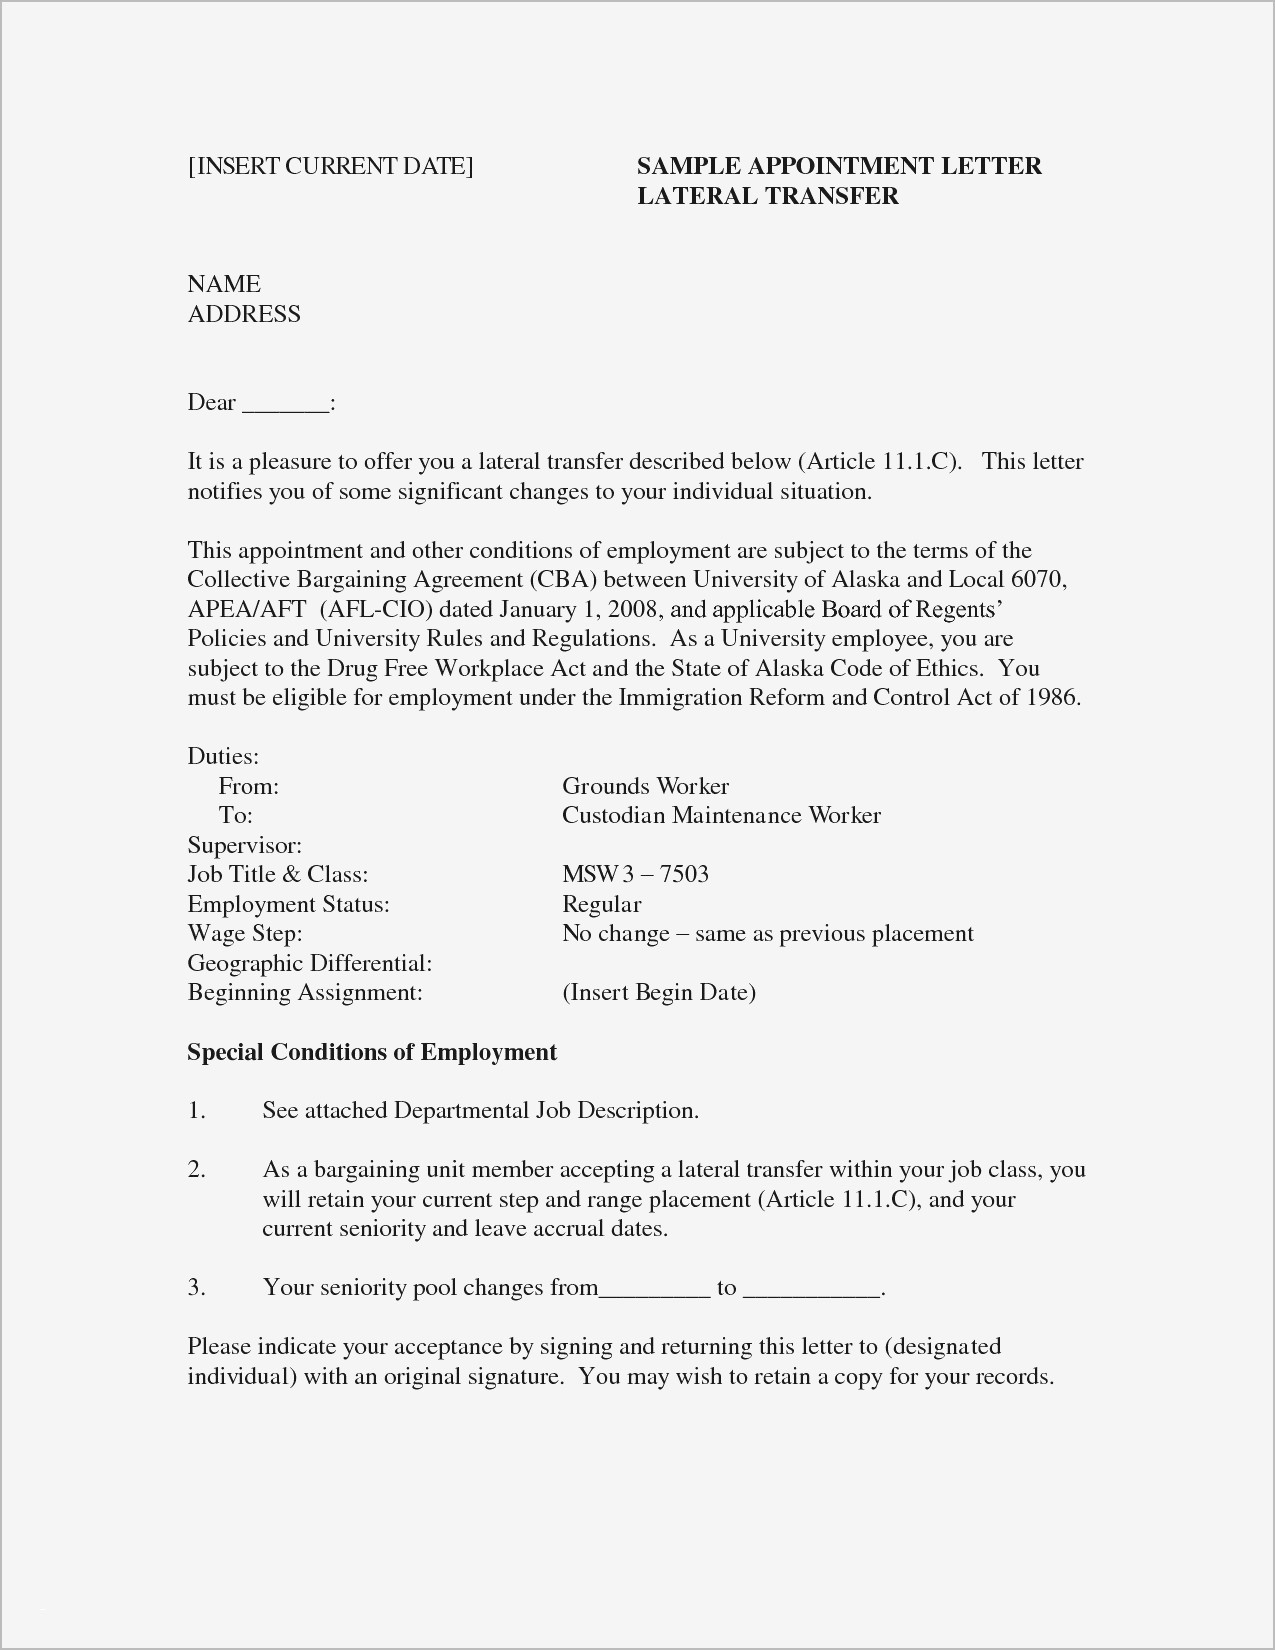 trader resume example-Private Equity Resume Luxury Sample Legal Resume Save Job Resume Examples Best Fresh Resume 0d 2-s